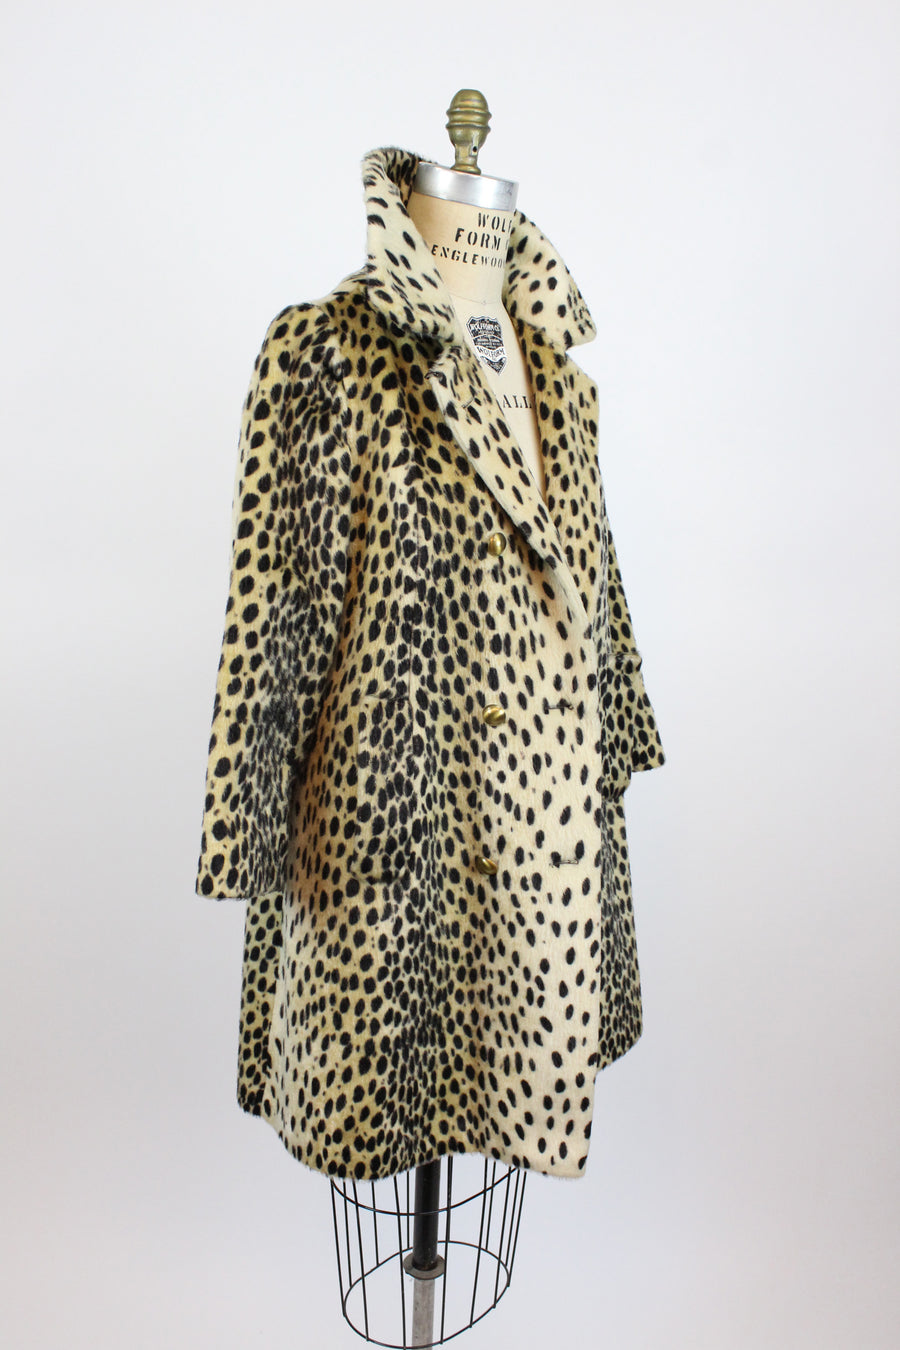 1960s leopard coat small medium | vintage faux fur jacket | new in